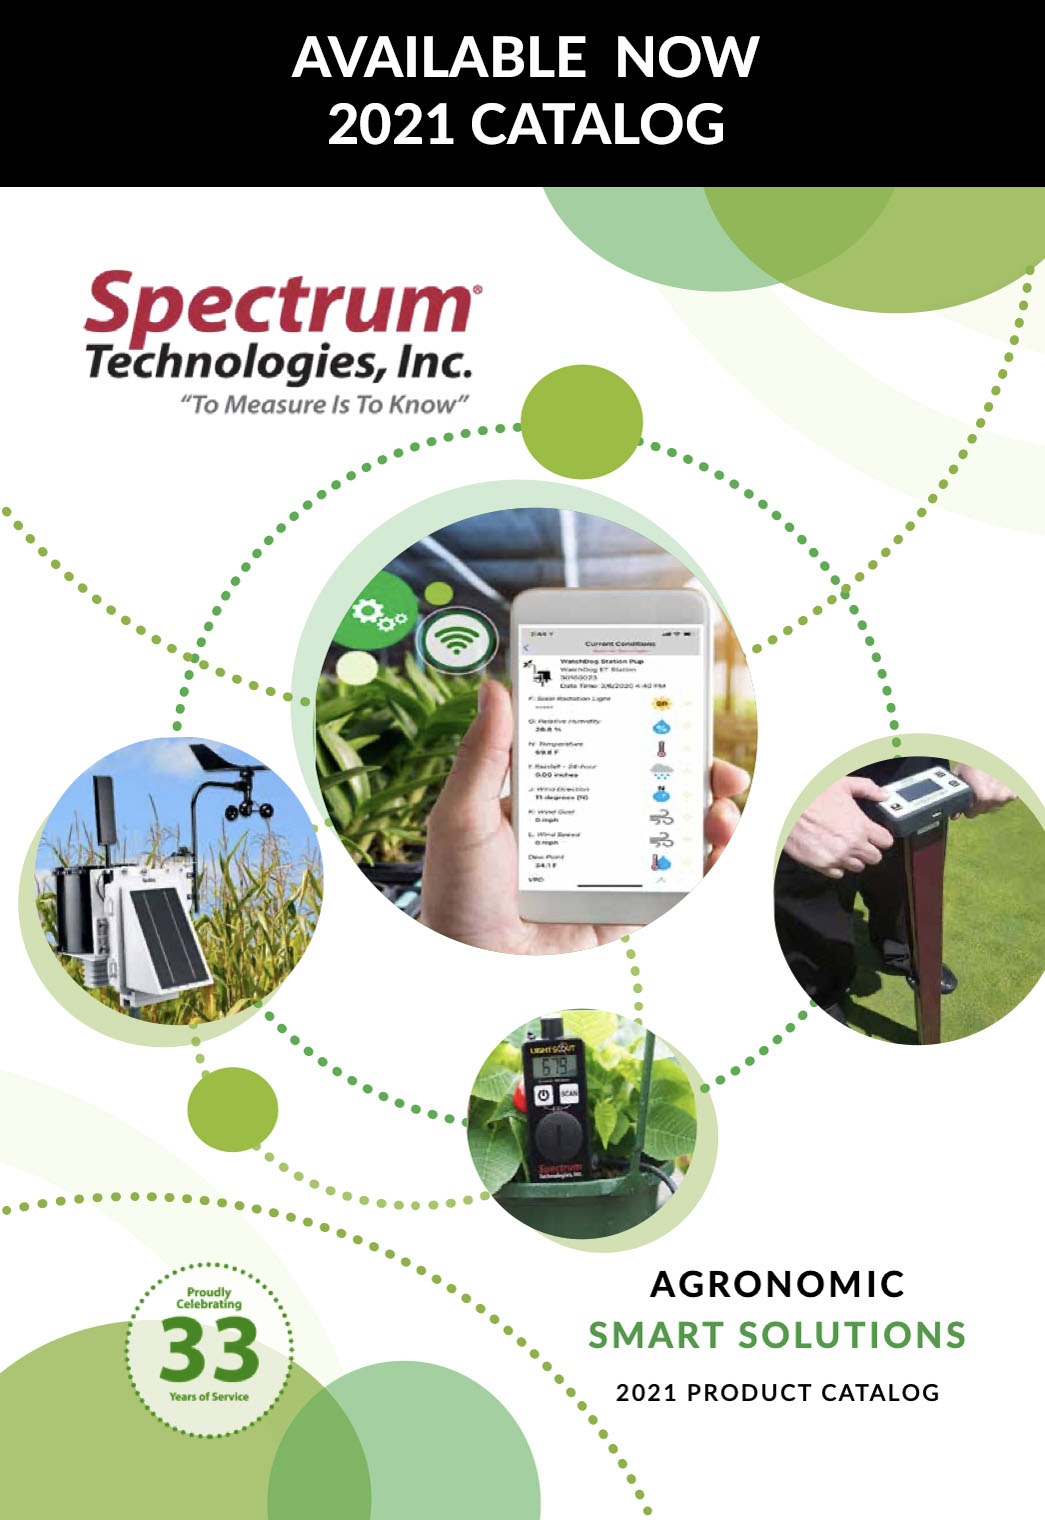 Request a Spectrum Technologies Product Catalog